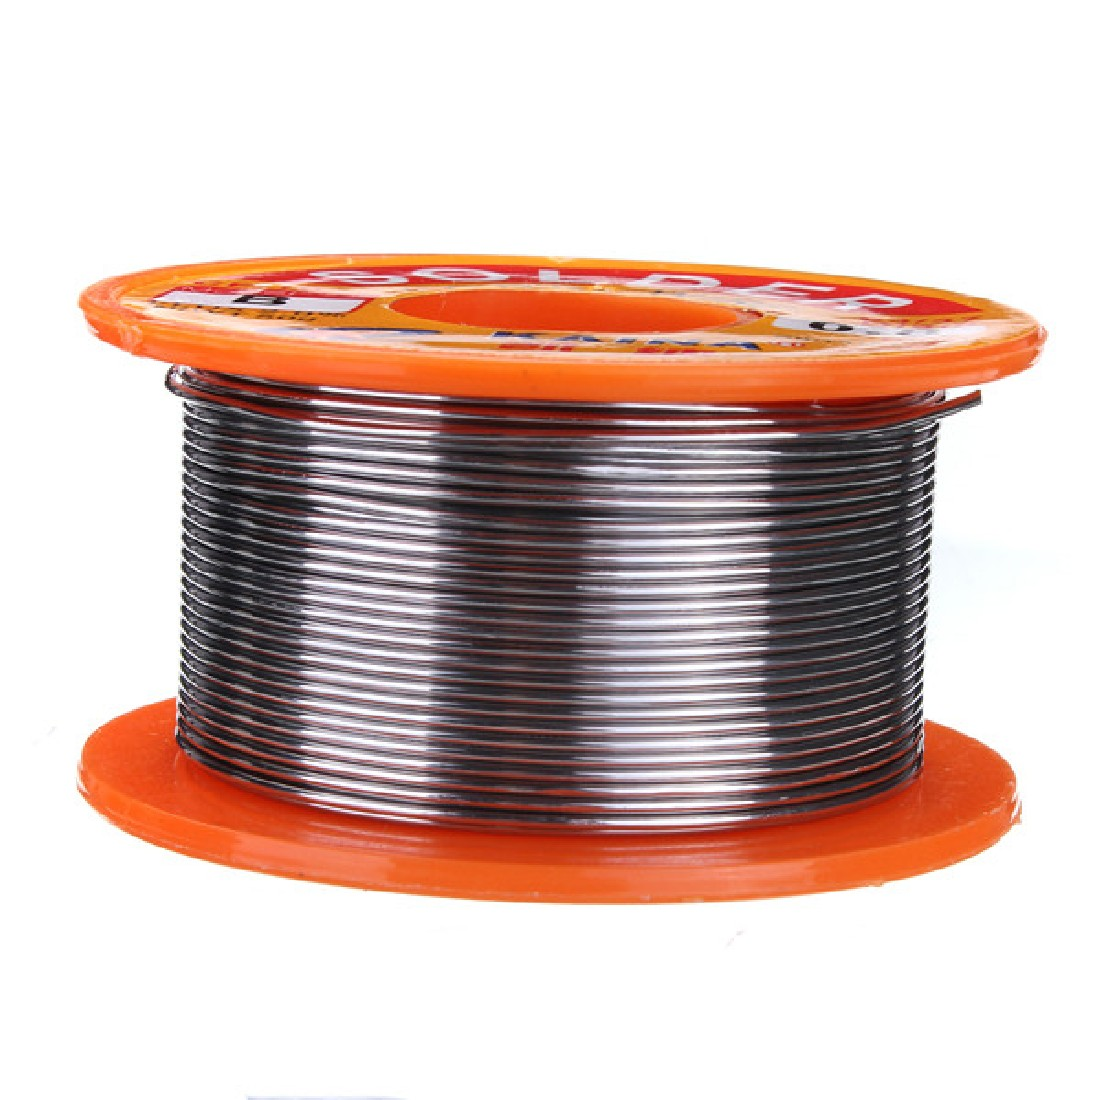 No-clean Tin 0.8mm Rosin Core Tin/Lead 0.8mm Alloy Rosin Roll Flux Solder Wire Reel Welding Line Solder Wire Clean Rosin Core